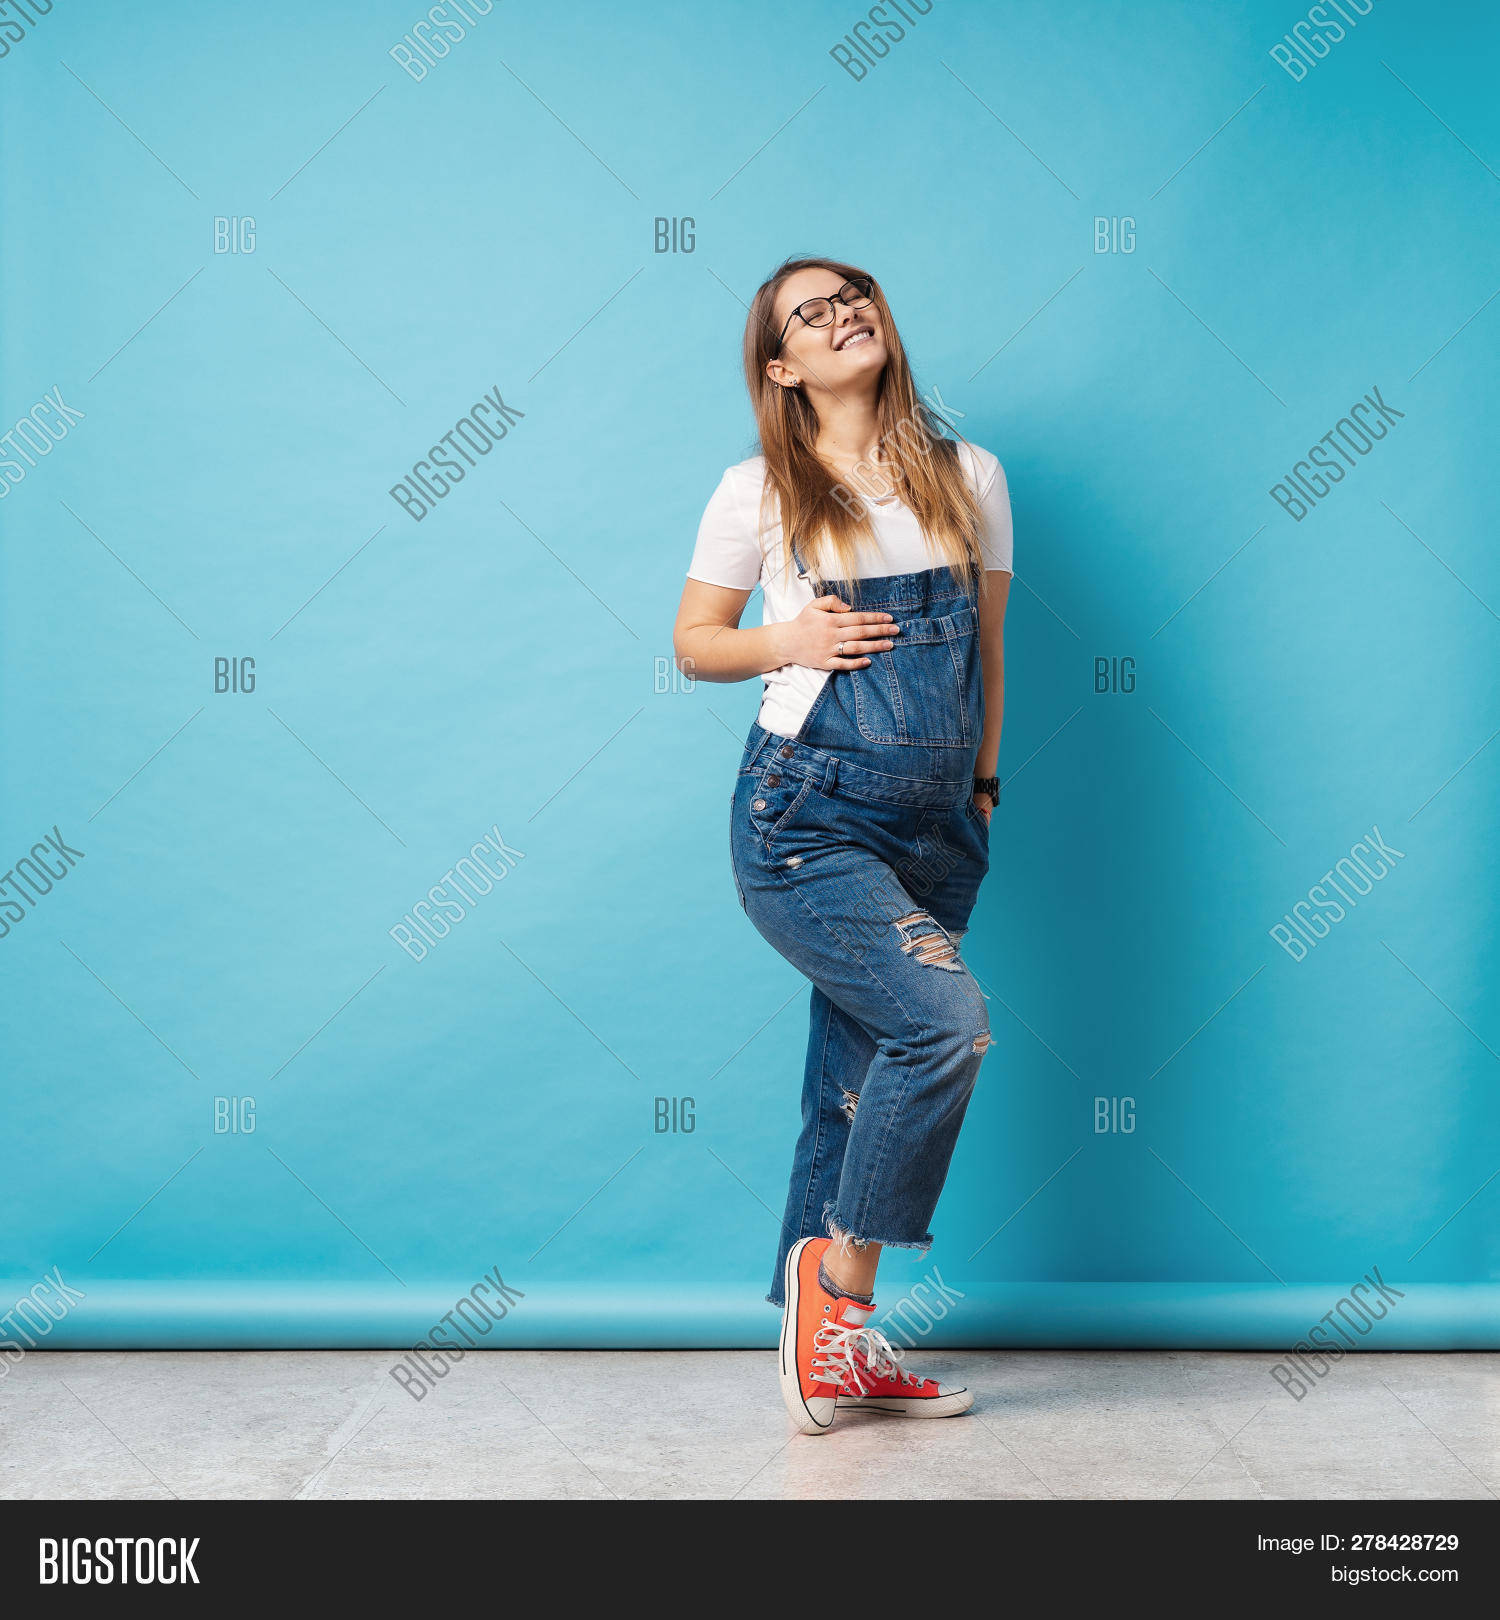 792247318f9 Pregnant Woman Caressing Her Belly Over Blue Background. A Cute Young Woman  Wearing Glasses